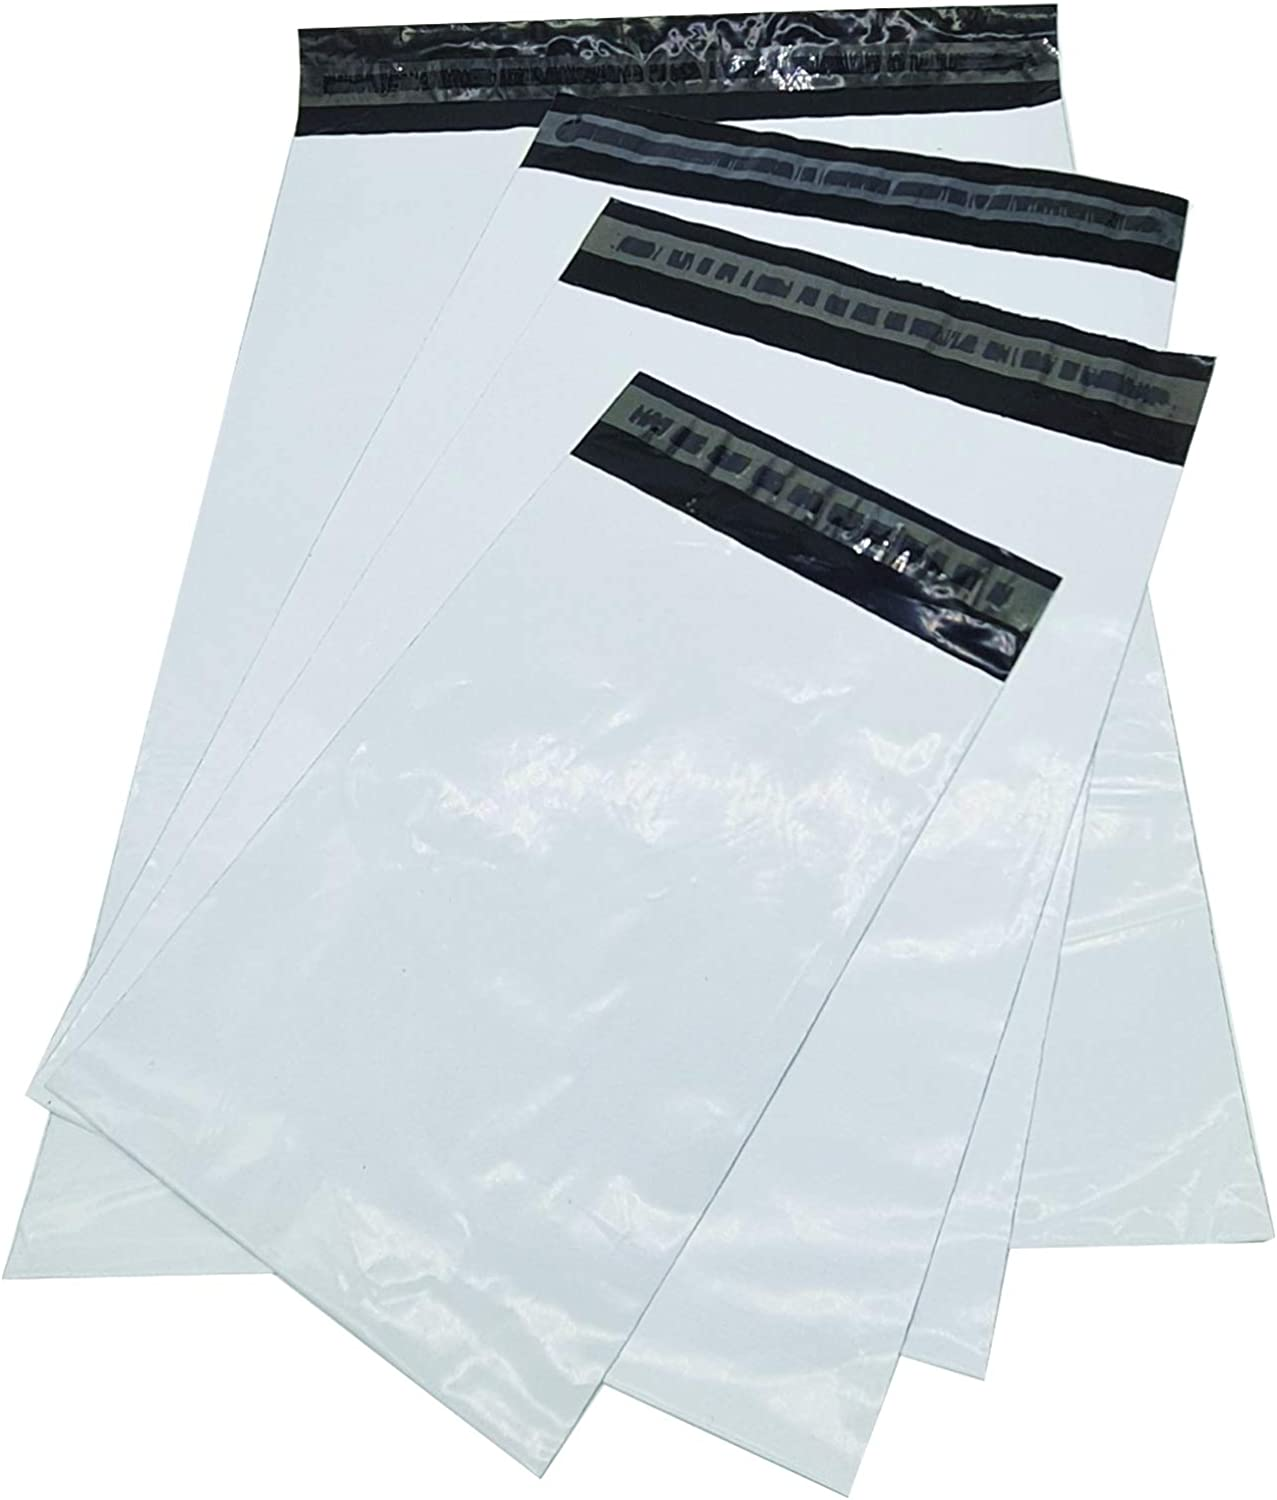 Sale SALE% OFF EJRange Mixed White Mailing Bags Strong Envelopes Shipping Pack 5 ☆ popular